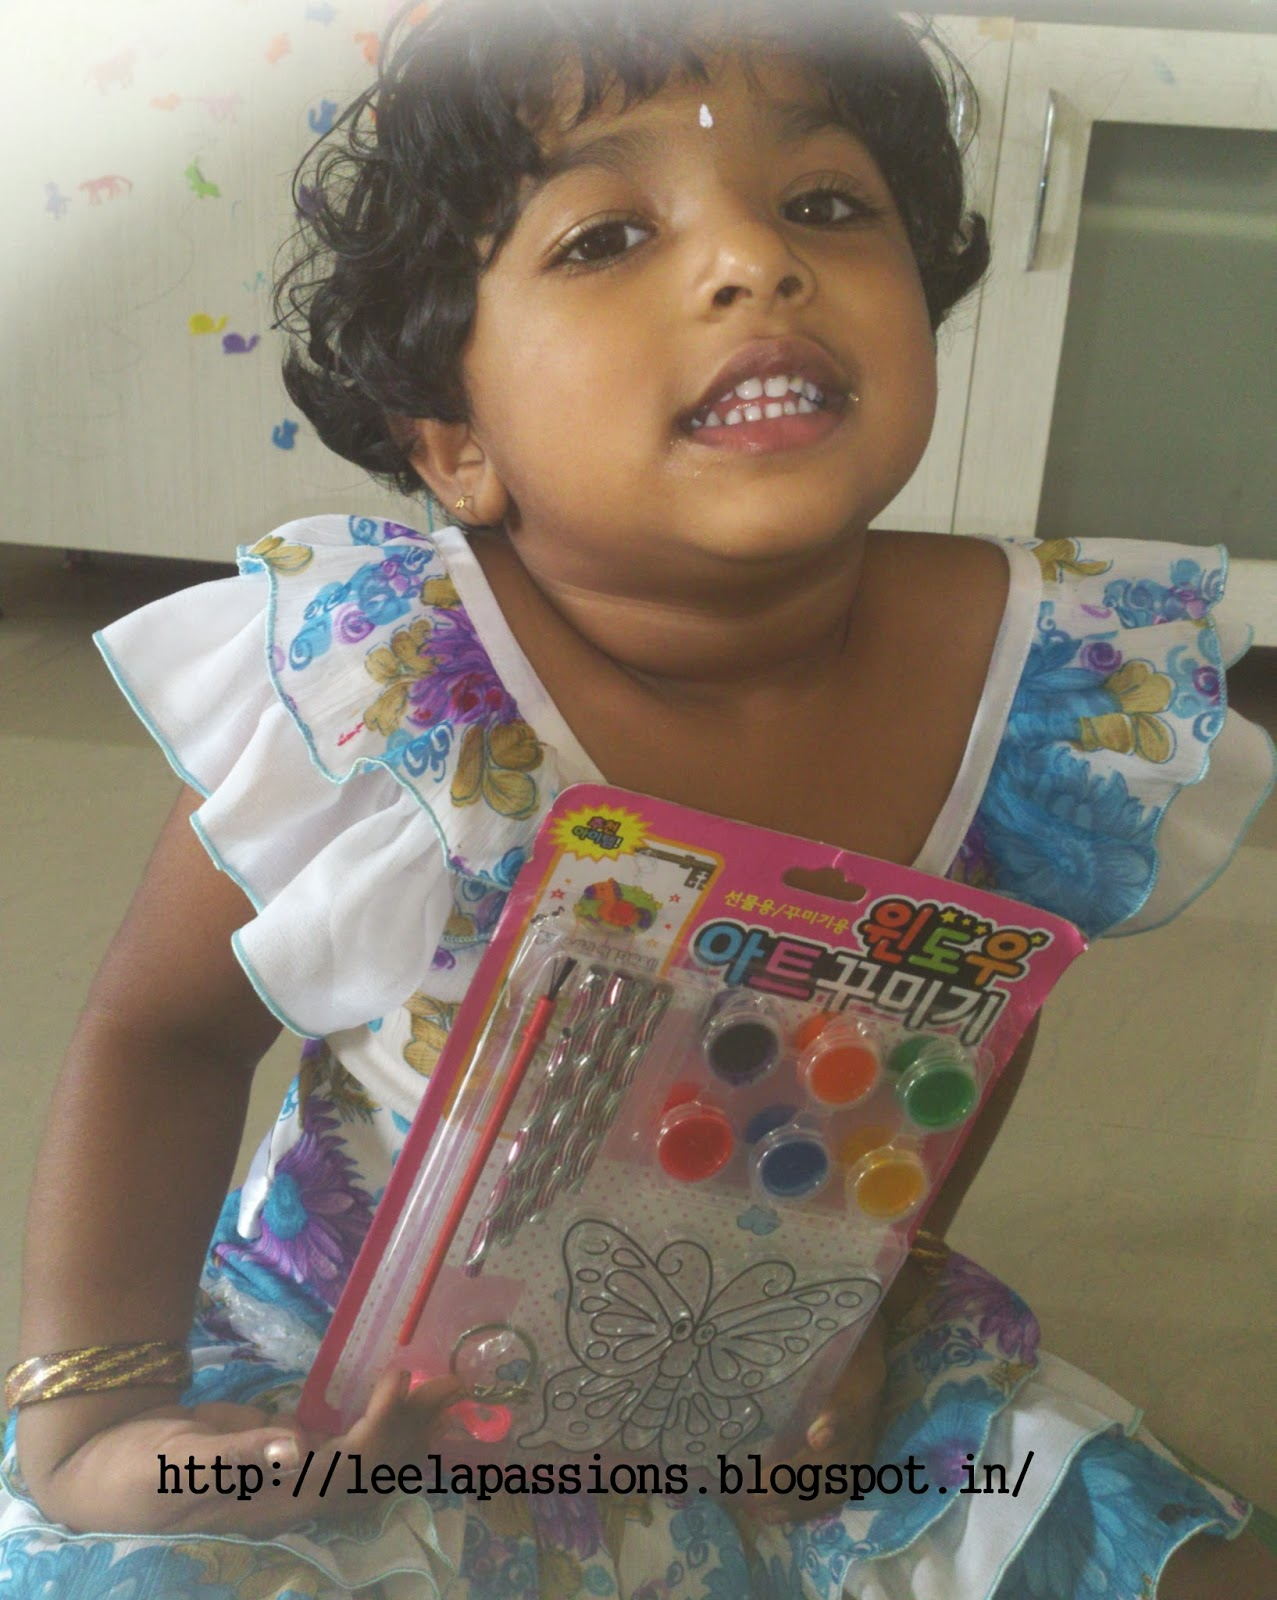 Little medha growing up 2013 i have bought do it yourself color windchime for medha when she was around 2 years 3 months old this pack contains butterfly shape paint colors solutioingenieria Image collections